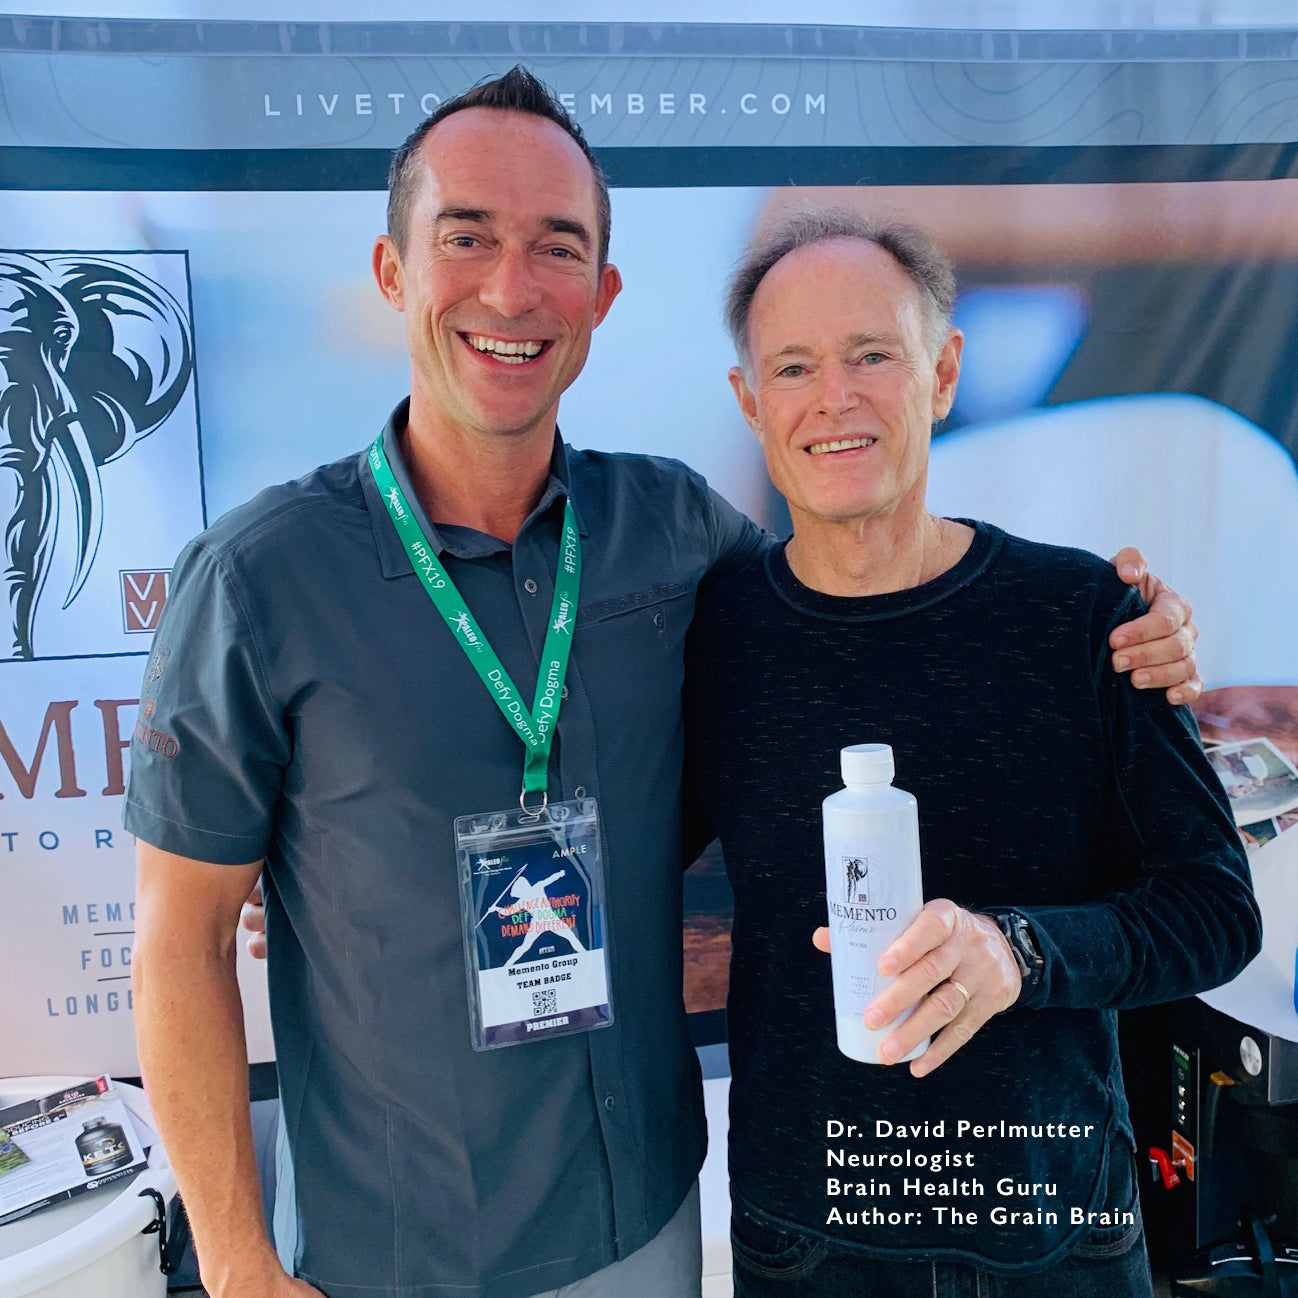 Joe Claussen With Dr. David Perlmutter at Paleo f/x with Memento Cognitive Creamers